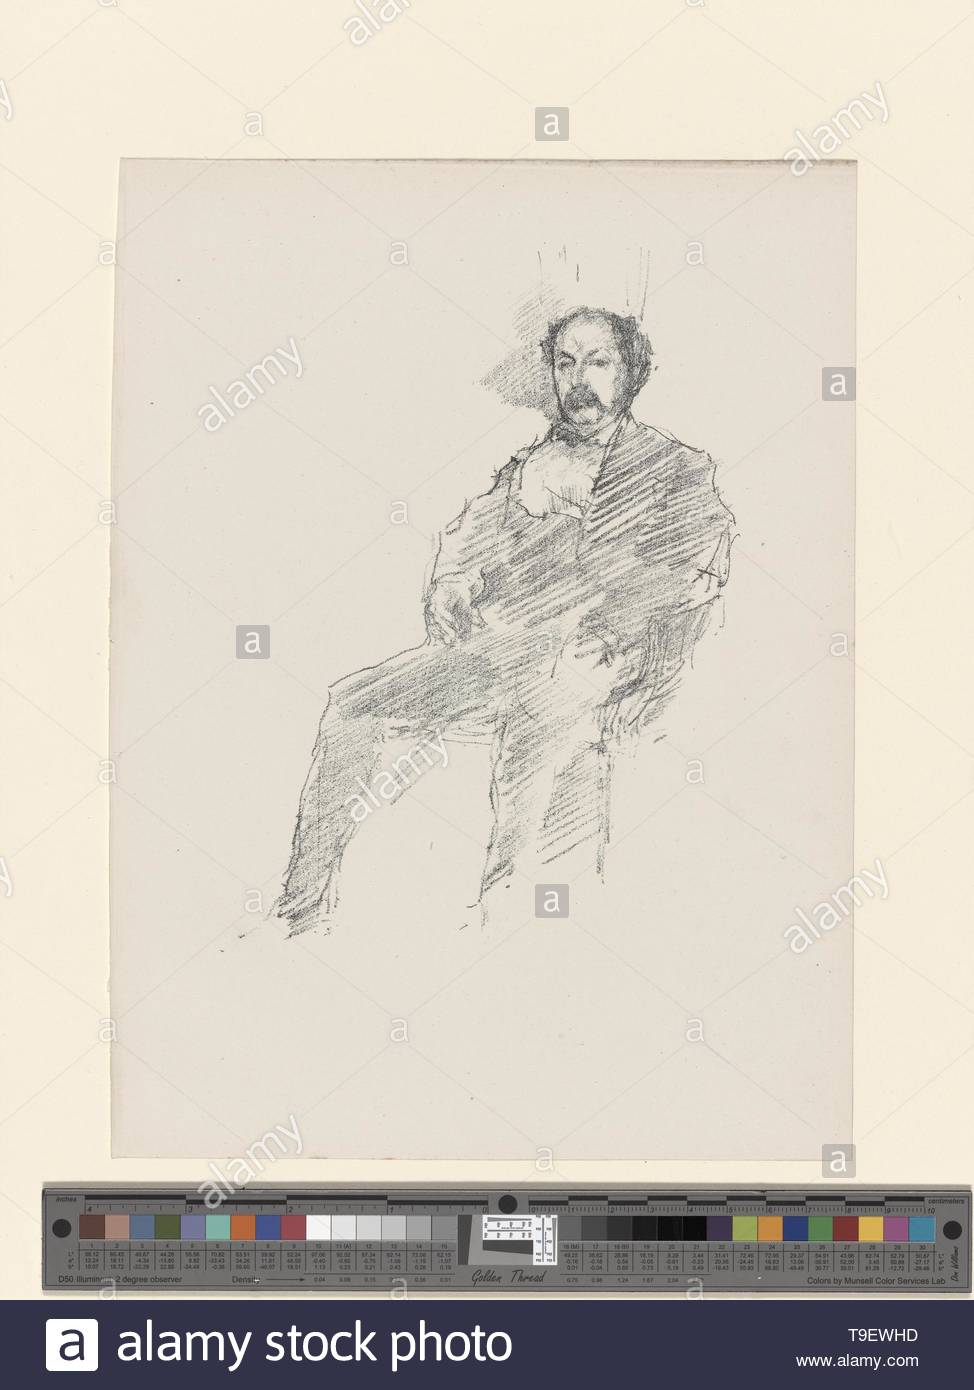 Whistler,JamesMcNeill(1834-1903)-The doctor - Stock Image